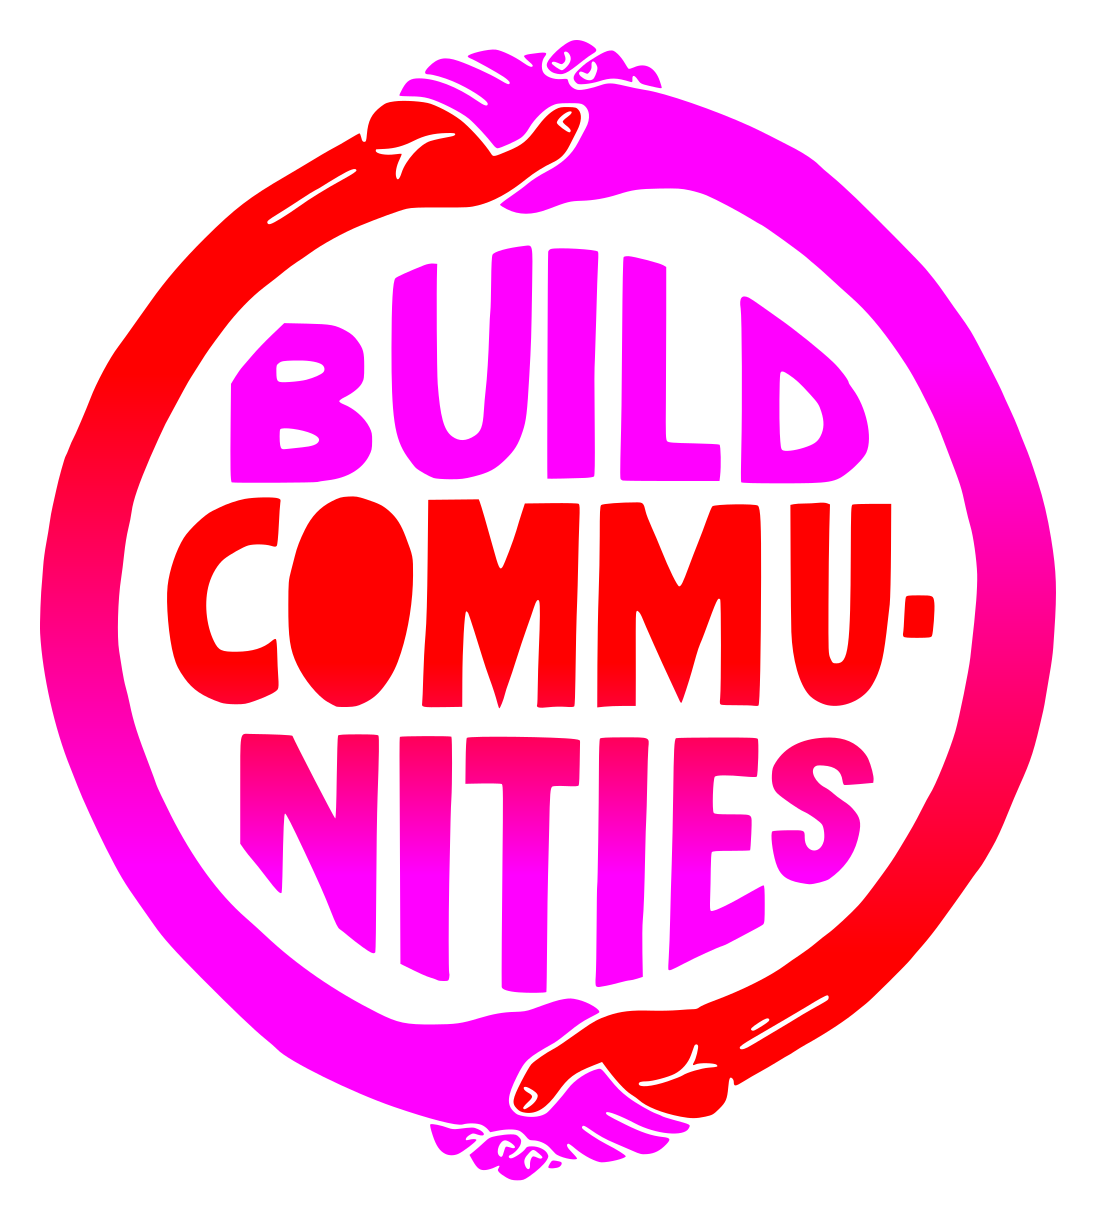 Build communites artwork